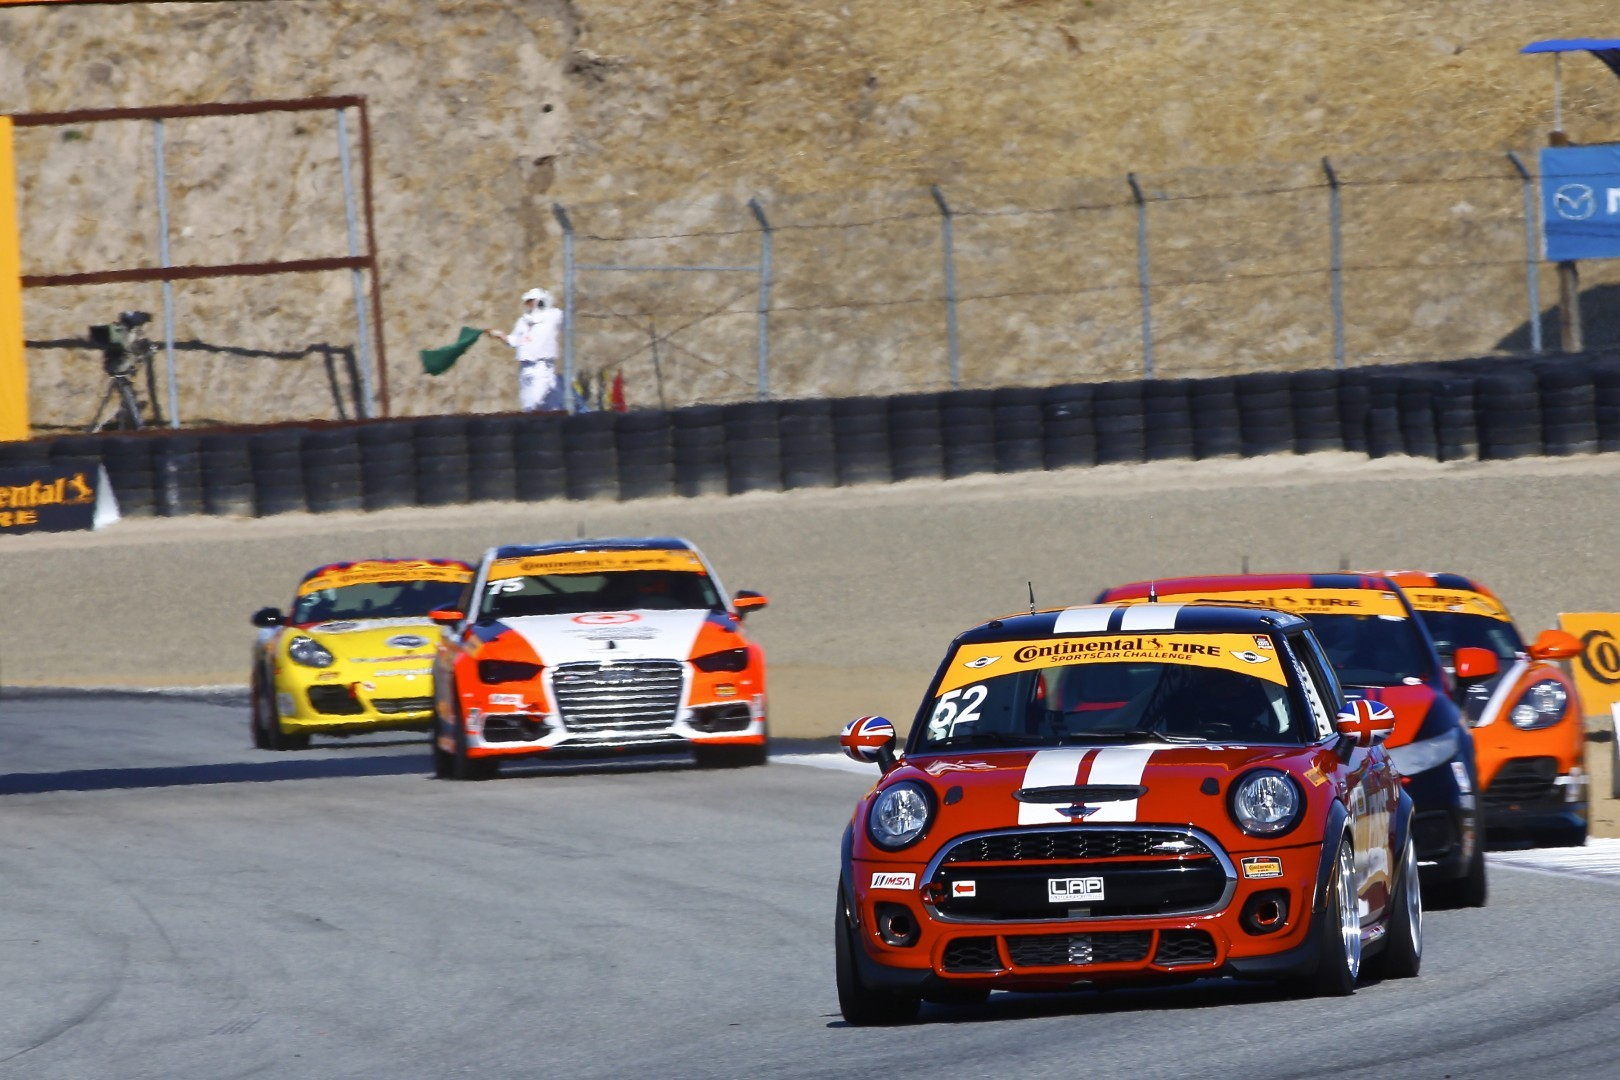 IMSA Article: From Drawing Board to Podium